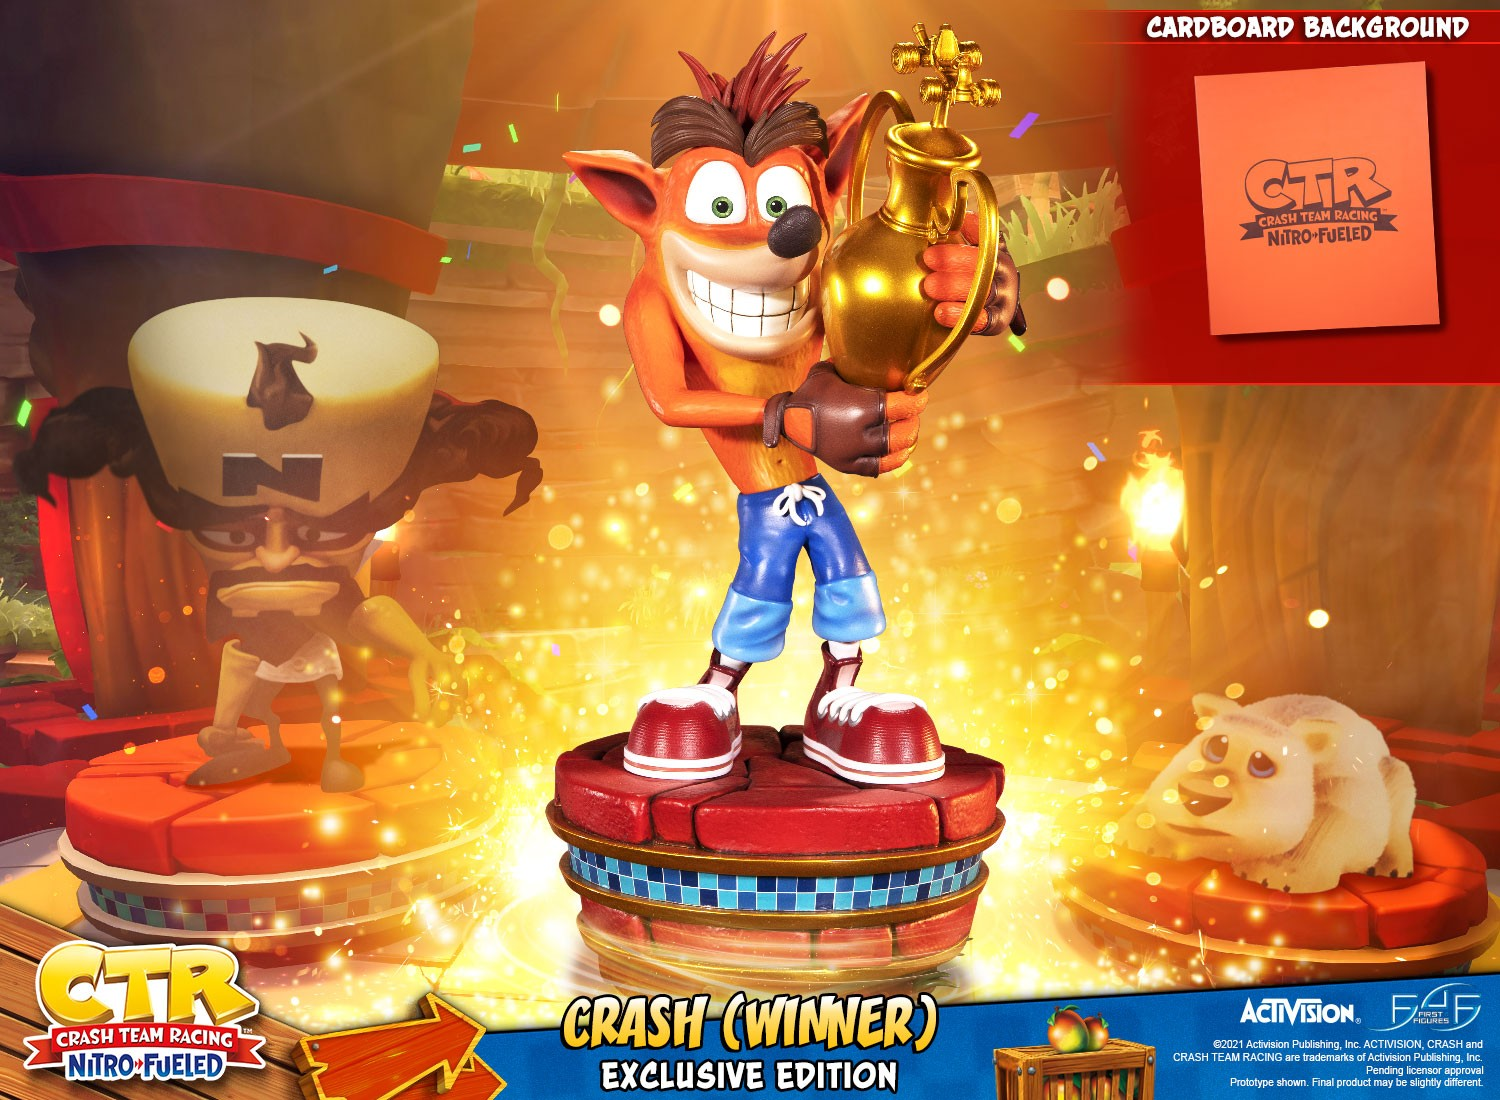 Crash Team Racing™ Nitro-Fueled – Crash (Winner) (Exclusive Edition)